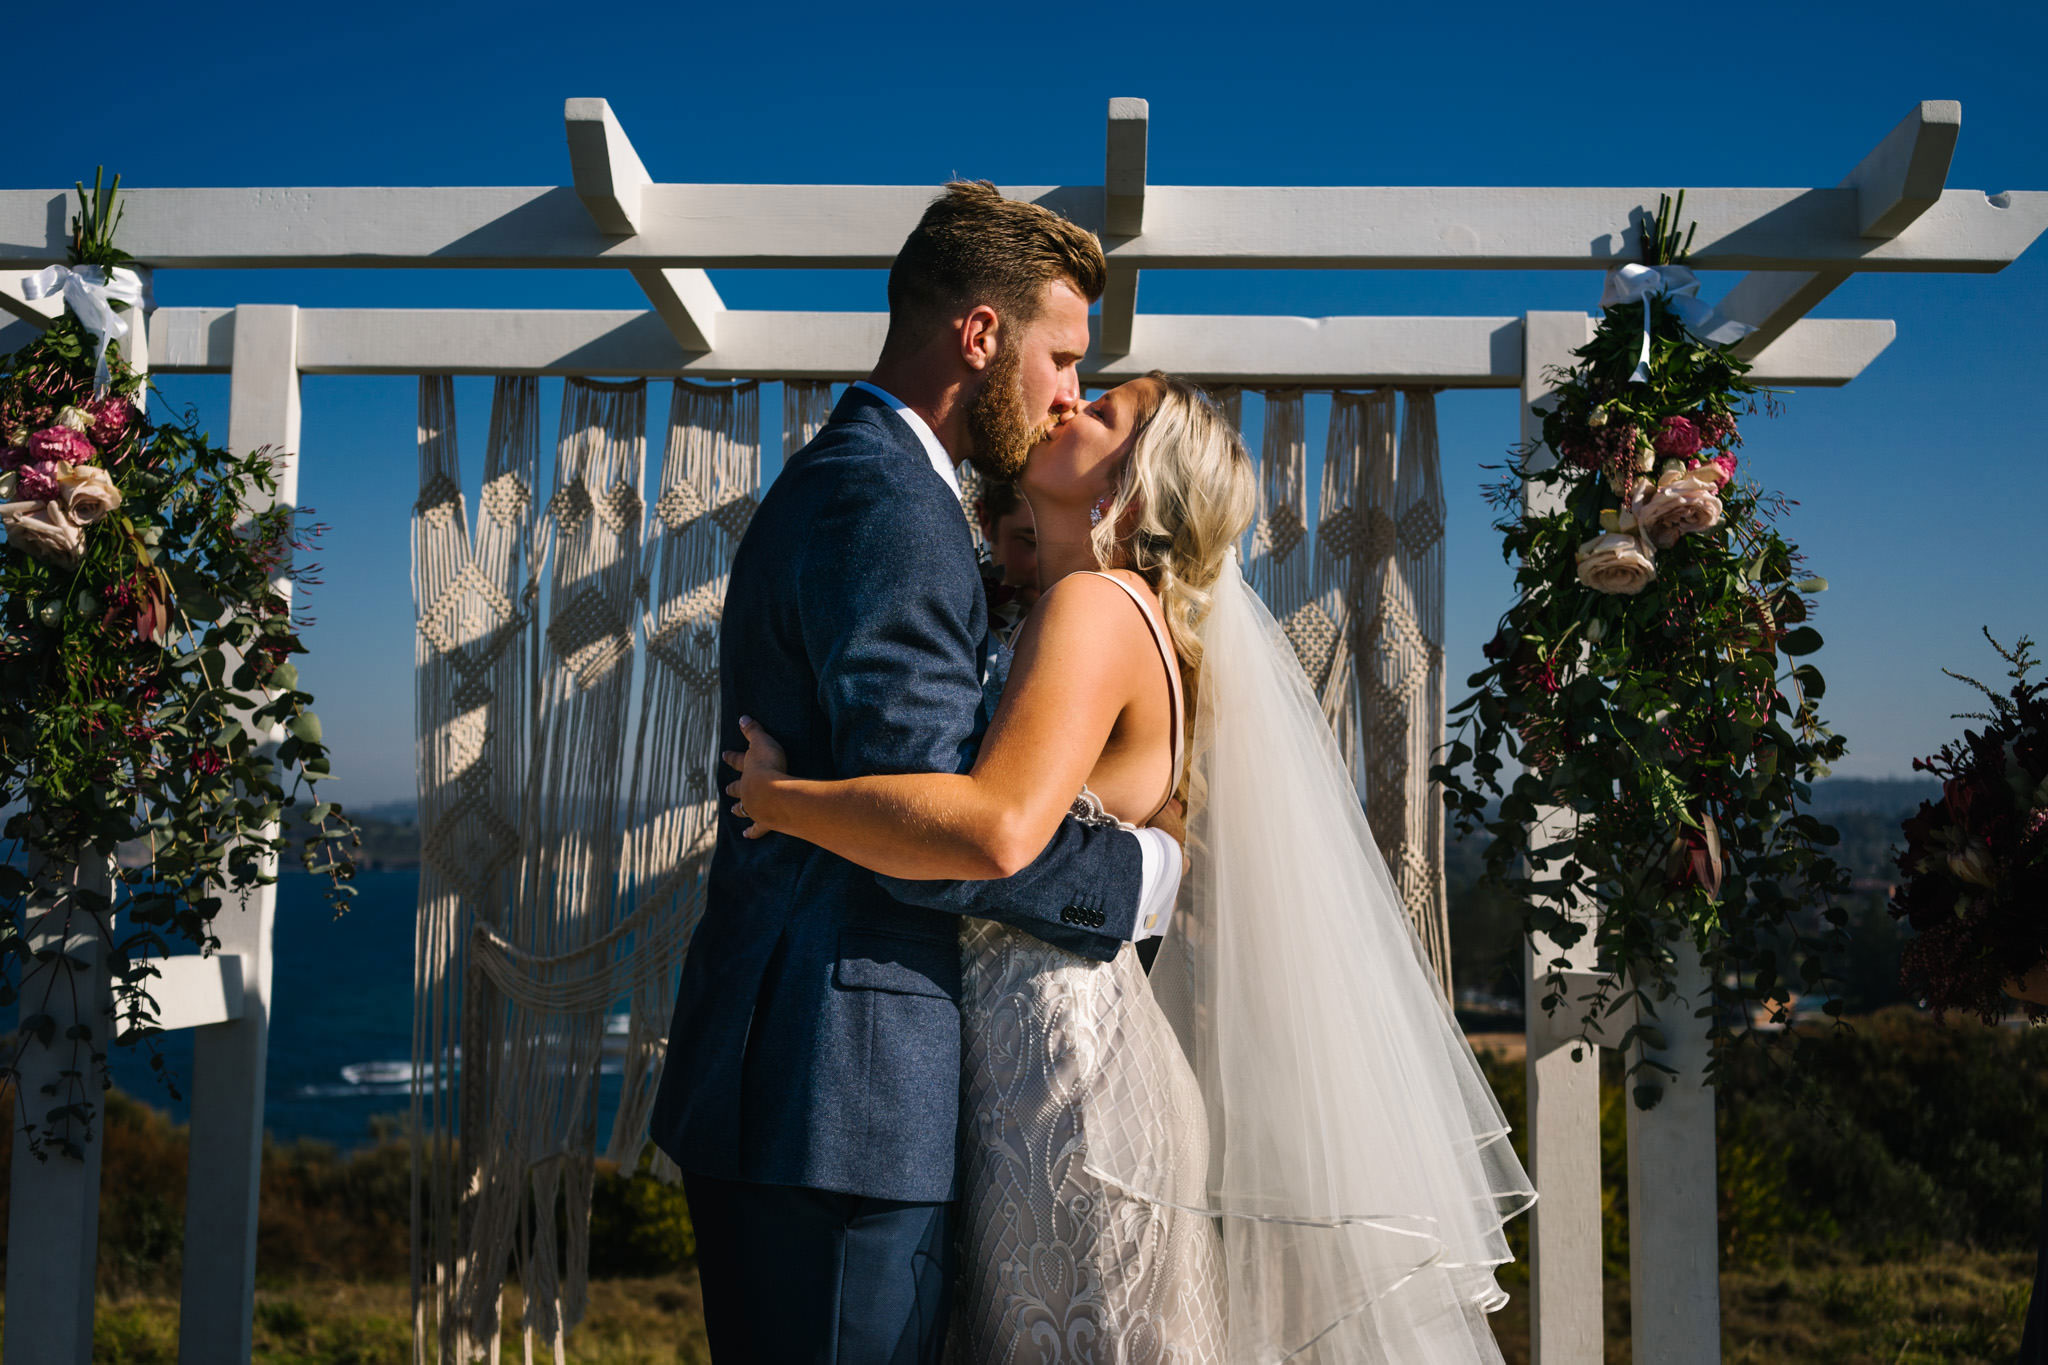 Newlyweds first kiss under boho wedding altar at outdoor headland ceremony